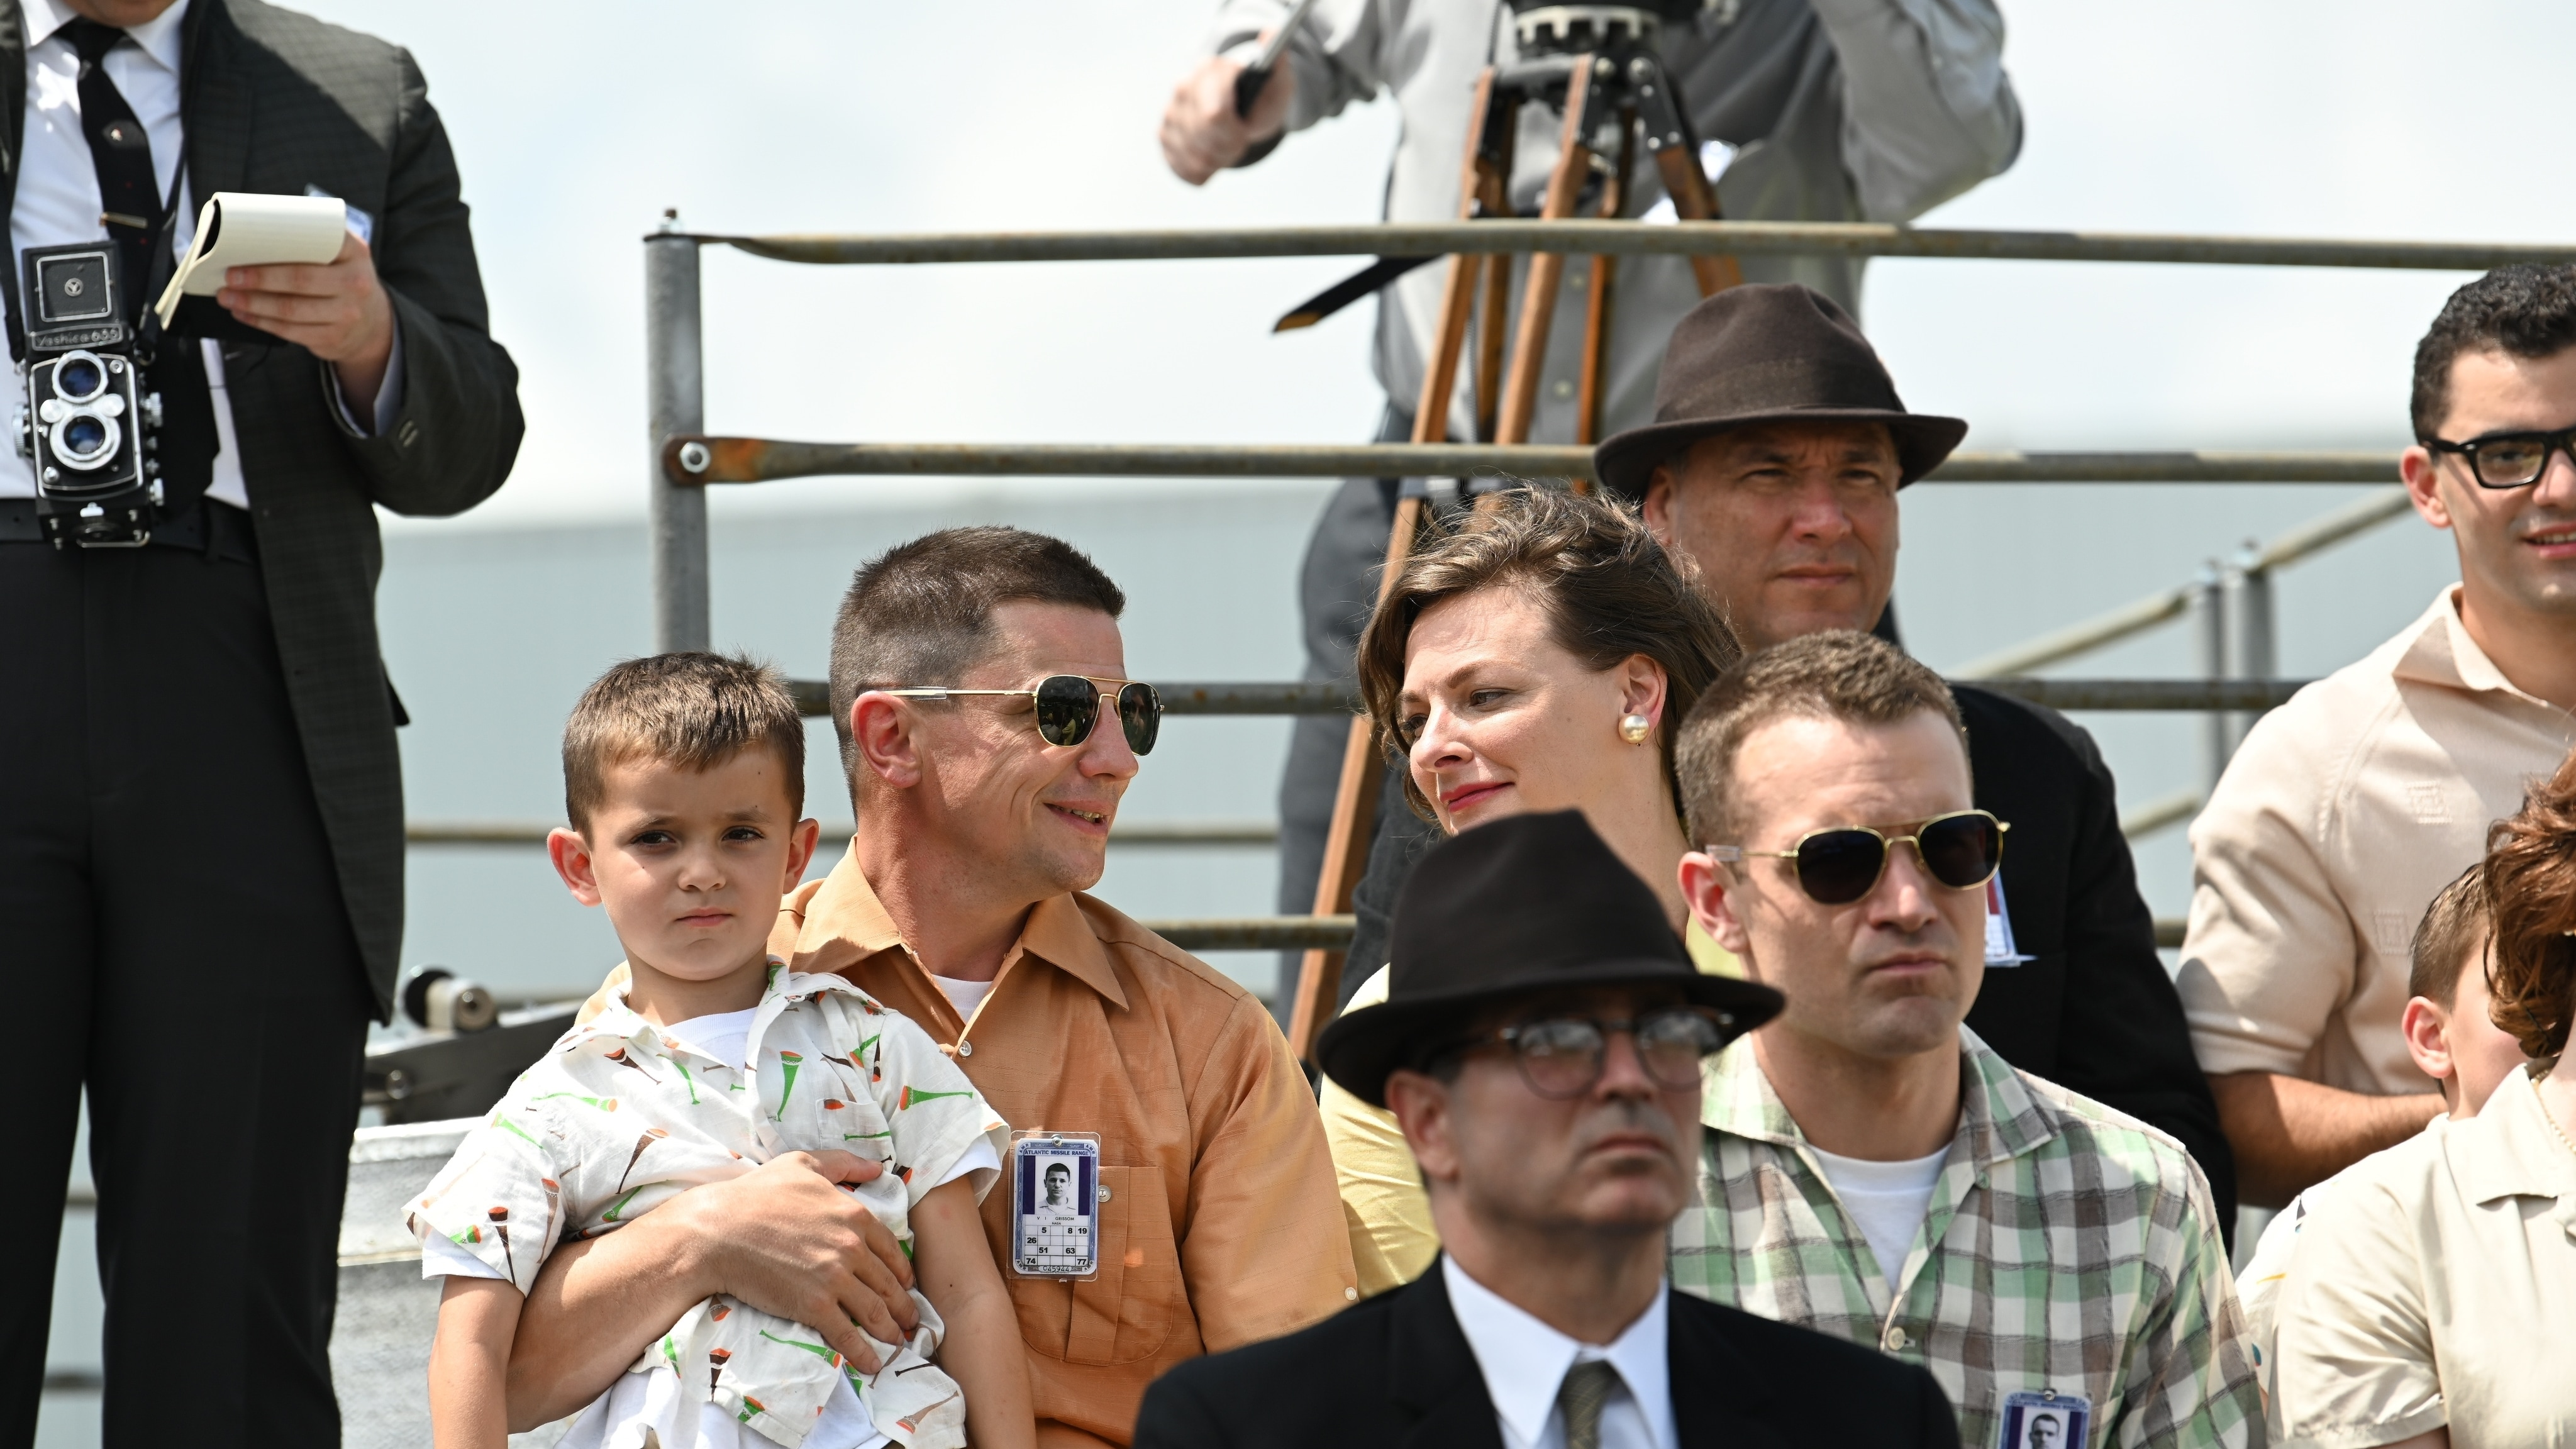 Gus Grissom played by Michael Trotter and Betty Grissom played by Rachel Buttram sit with their child watching the launch of a test rocket in National Geographic's THE RIGHT STUFF streaming on Disney+. (National Geographic/Gene Page)